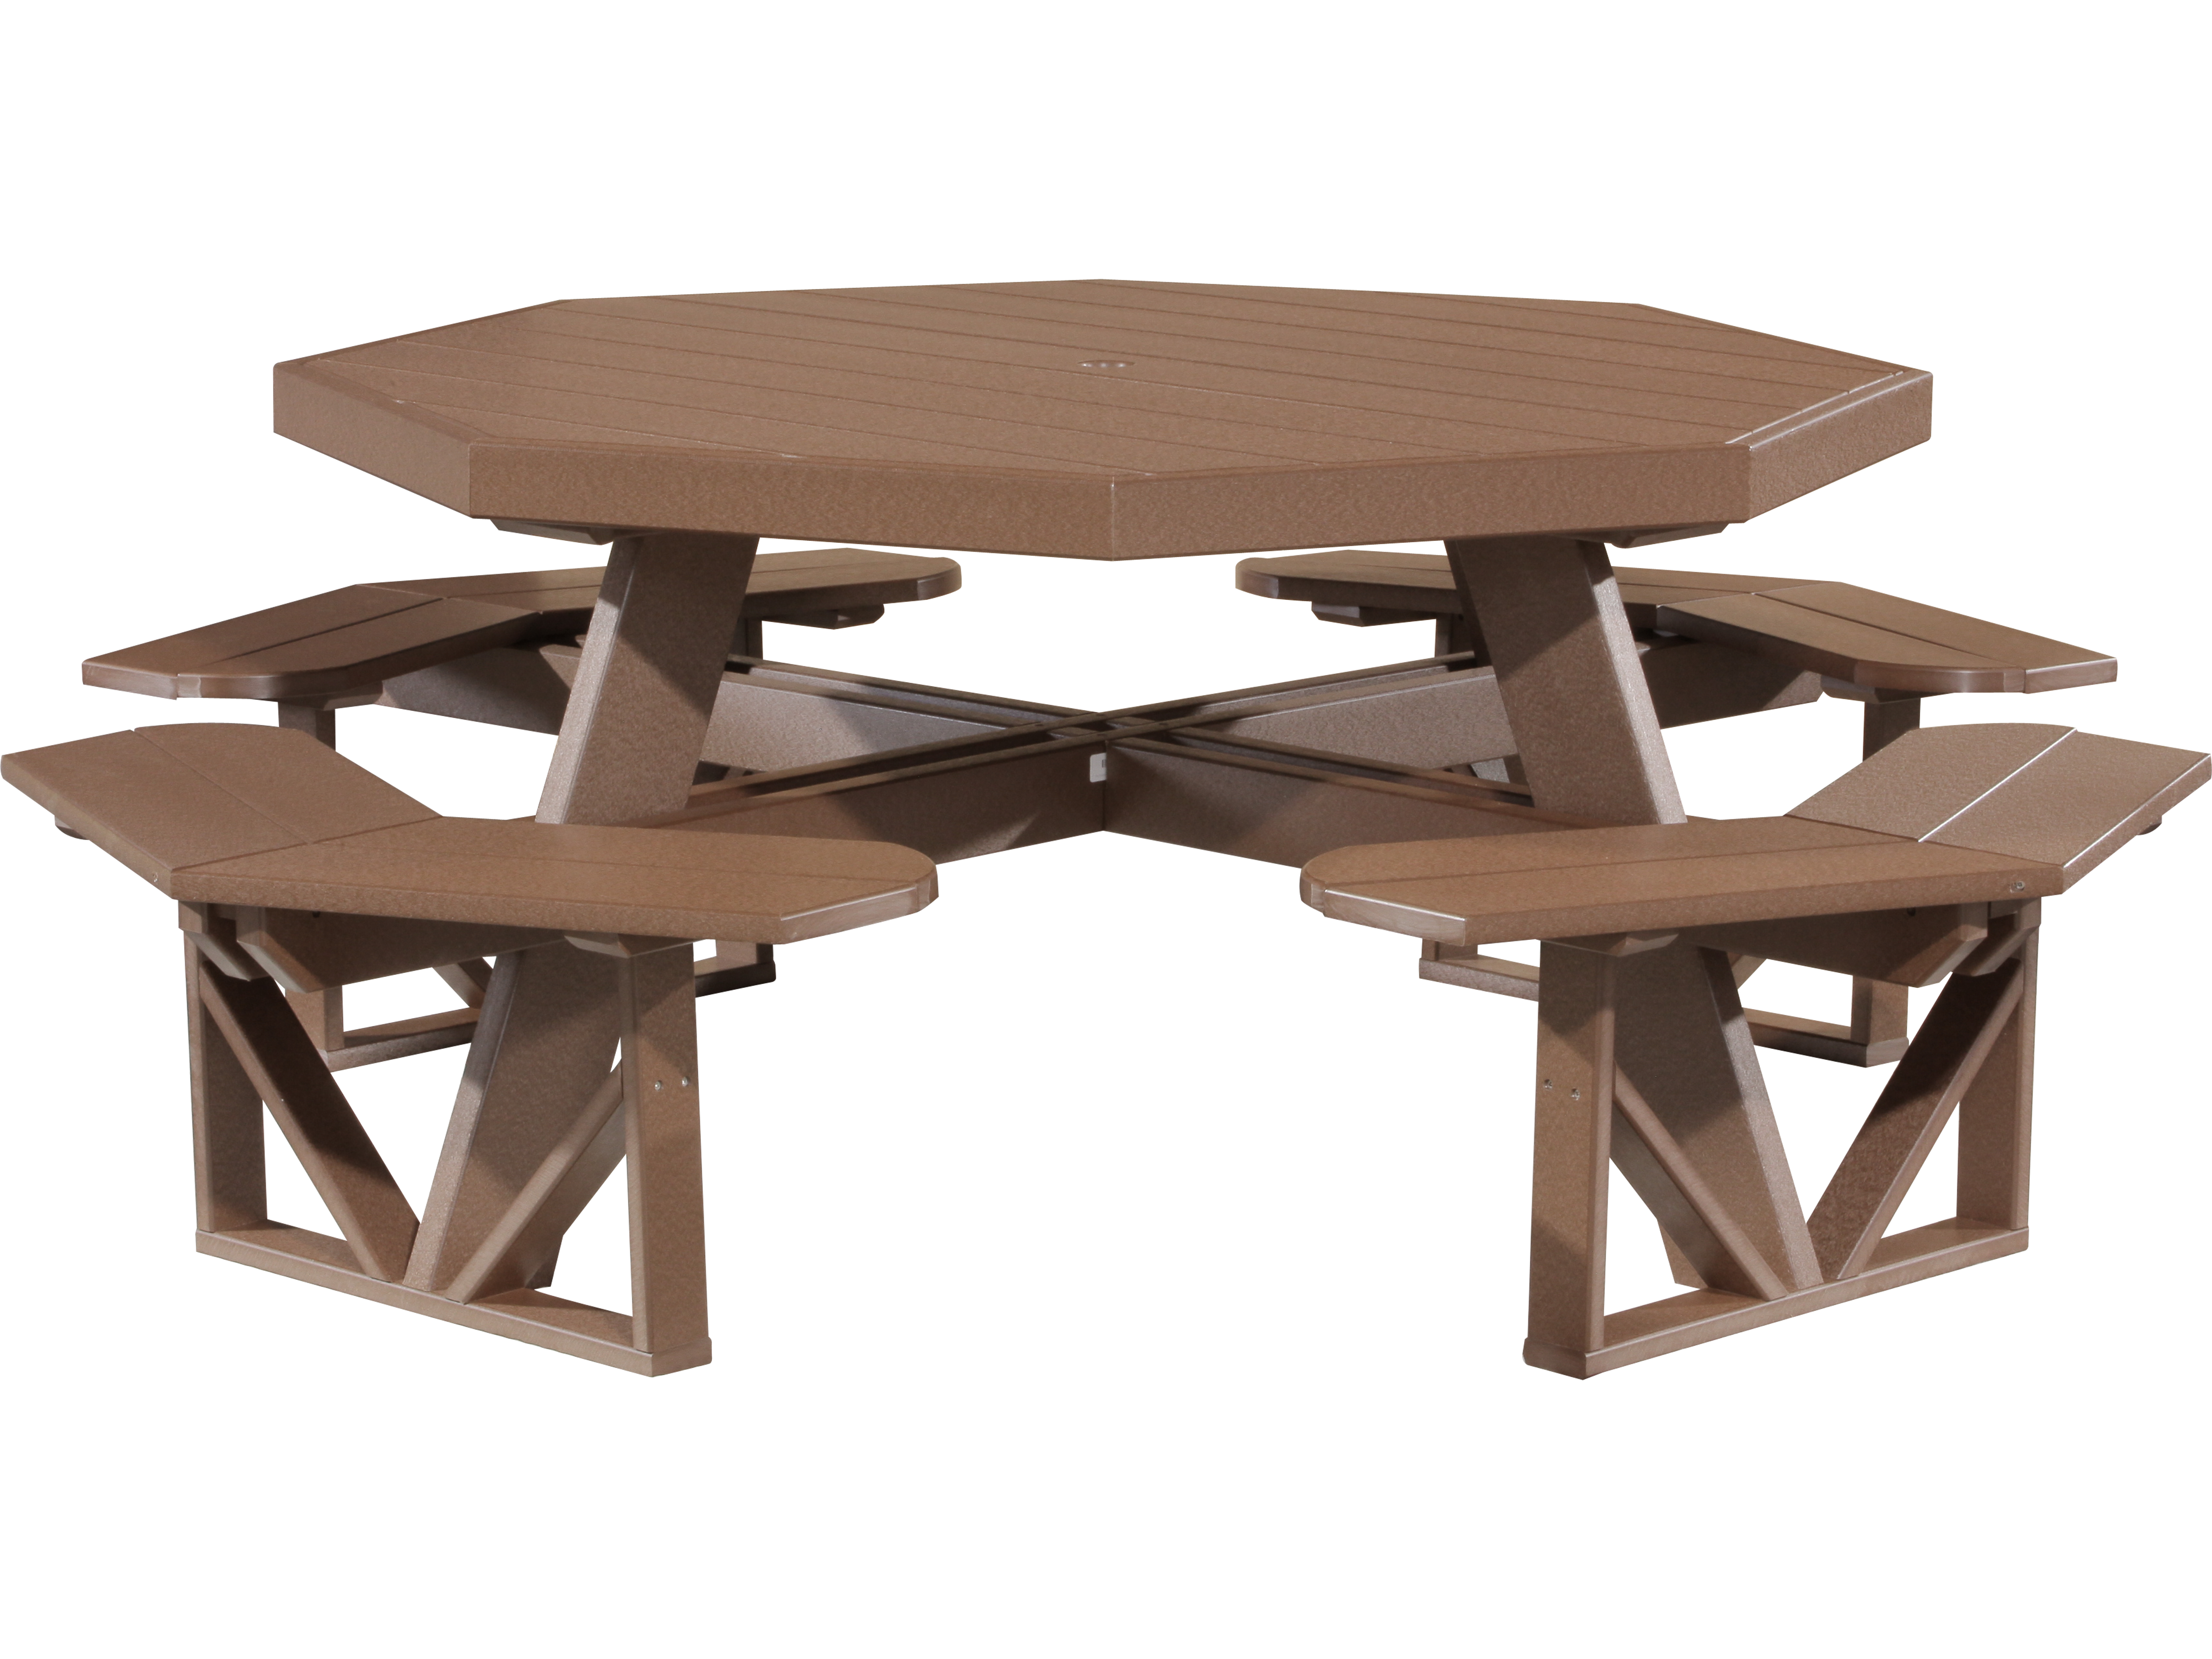 luxcraft recycled plastic 86 5 octagon picnic table with umbrella hole popt dining. Black Bedroom Furniture Sets. Home Design Ideas